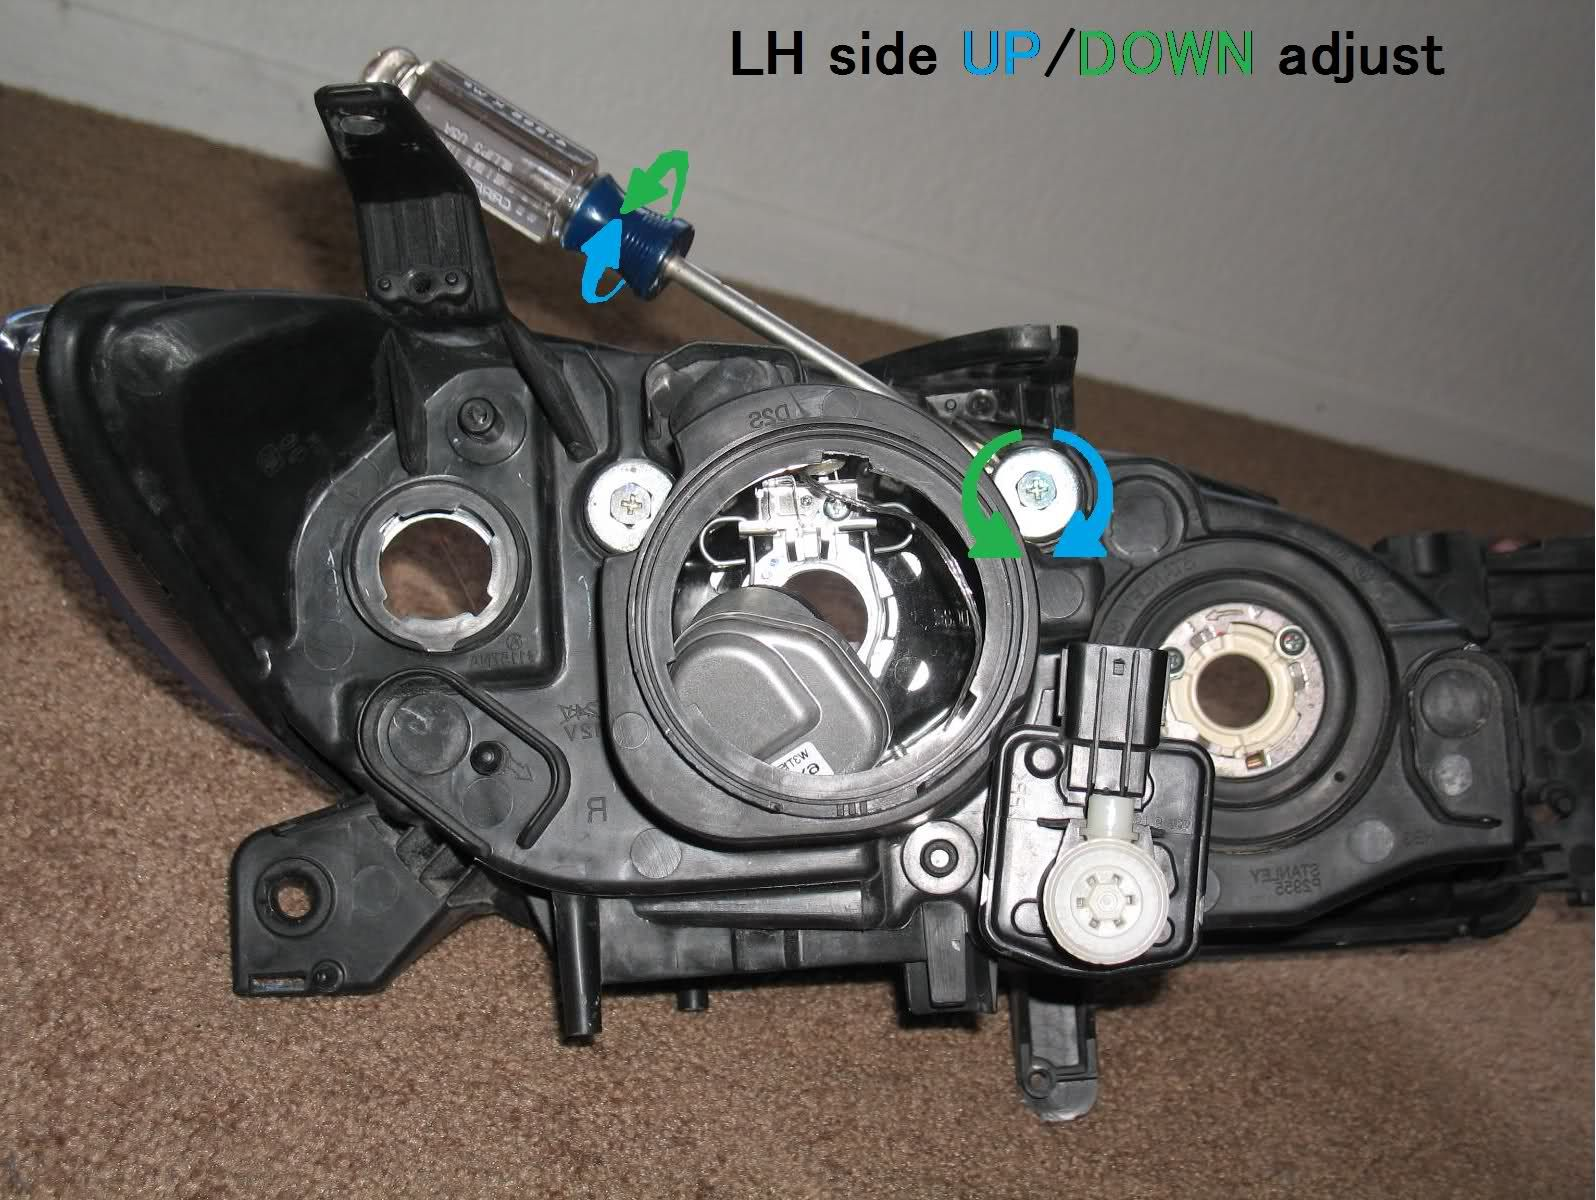 2006 mazda 6 headlight wiring diagram 2007 chrysler sebring ac 3 adjustment google search how to